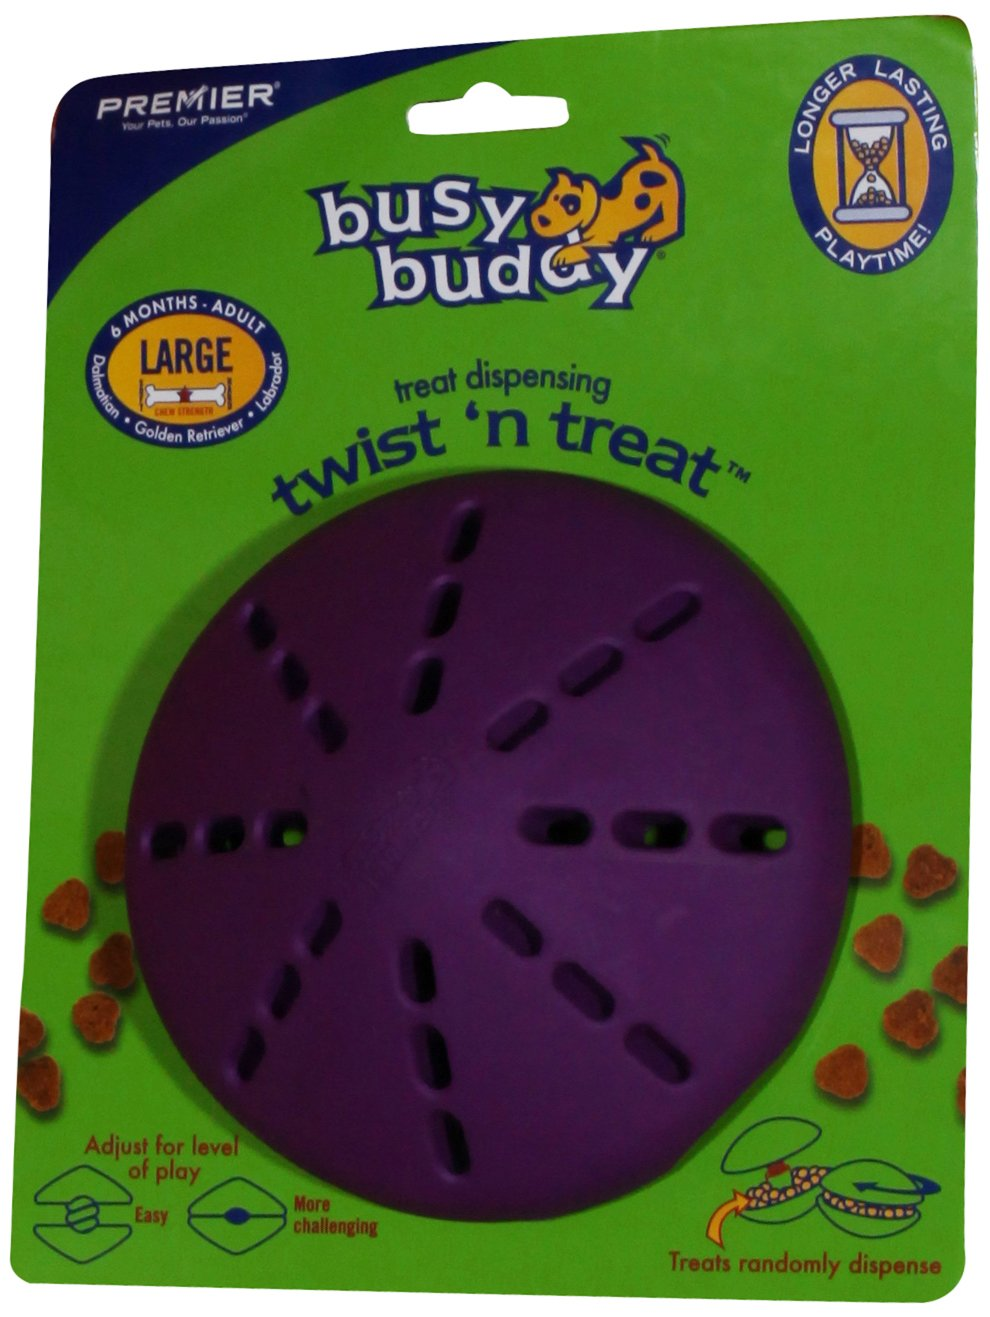 A dog toy designed to hide treats.